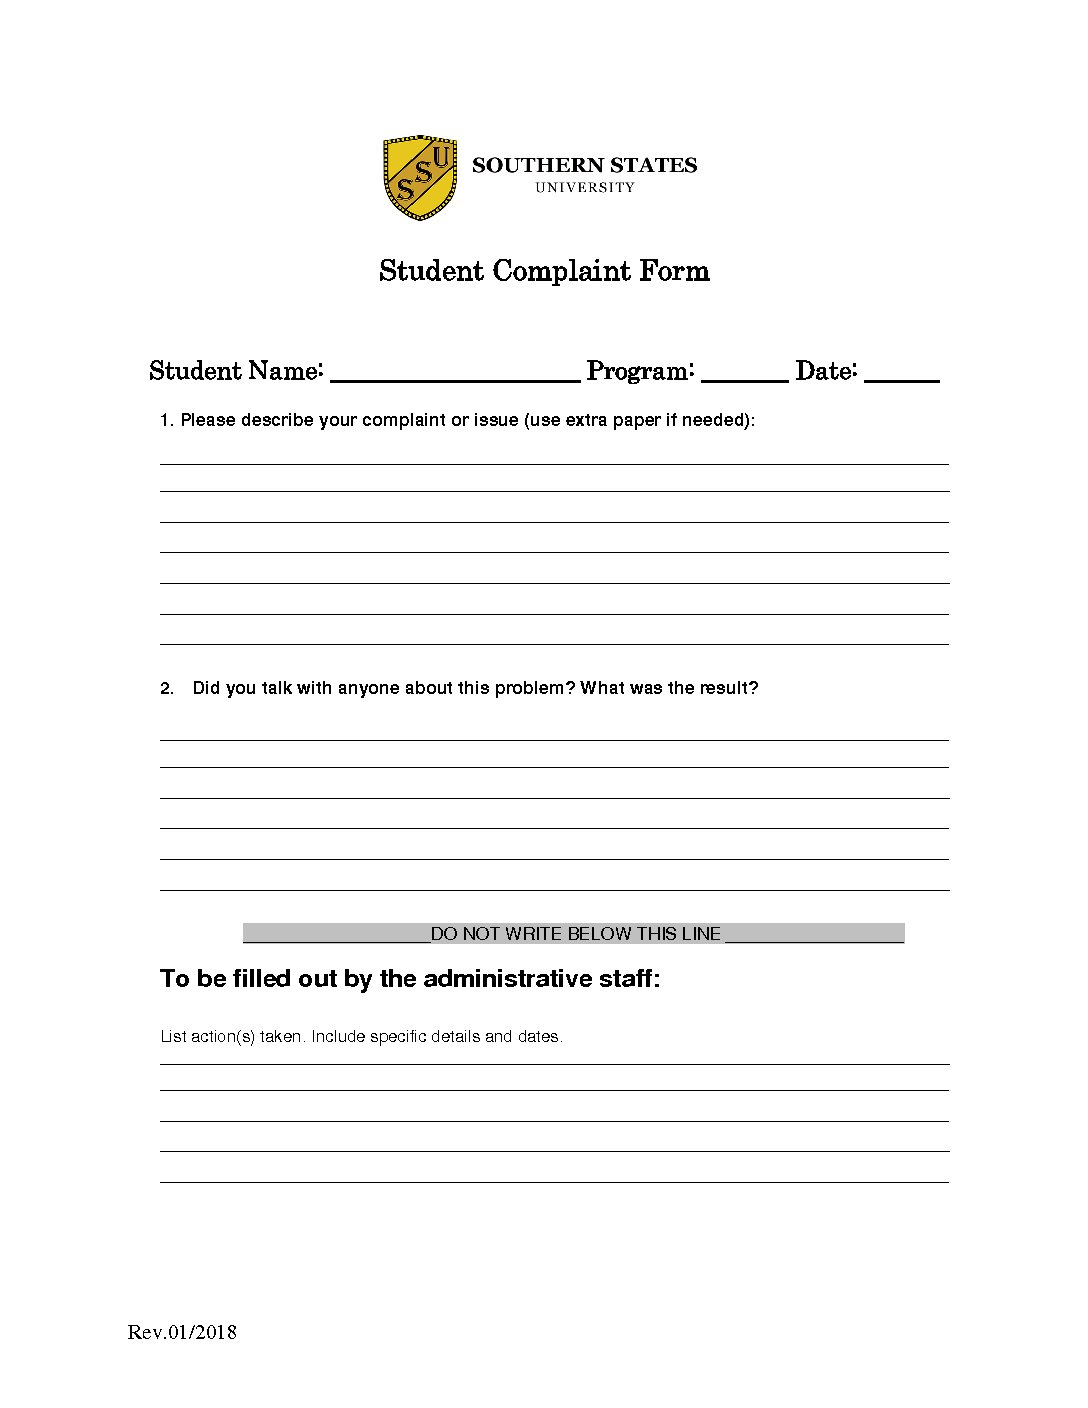 Student Complaint Form | Southern States University   Study In California  (San Diego, Newport Beach) And Nevada (Las Vegas)